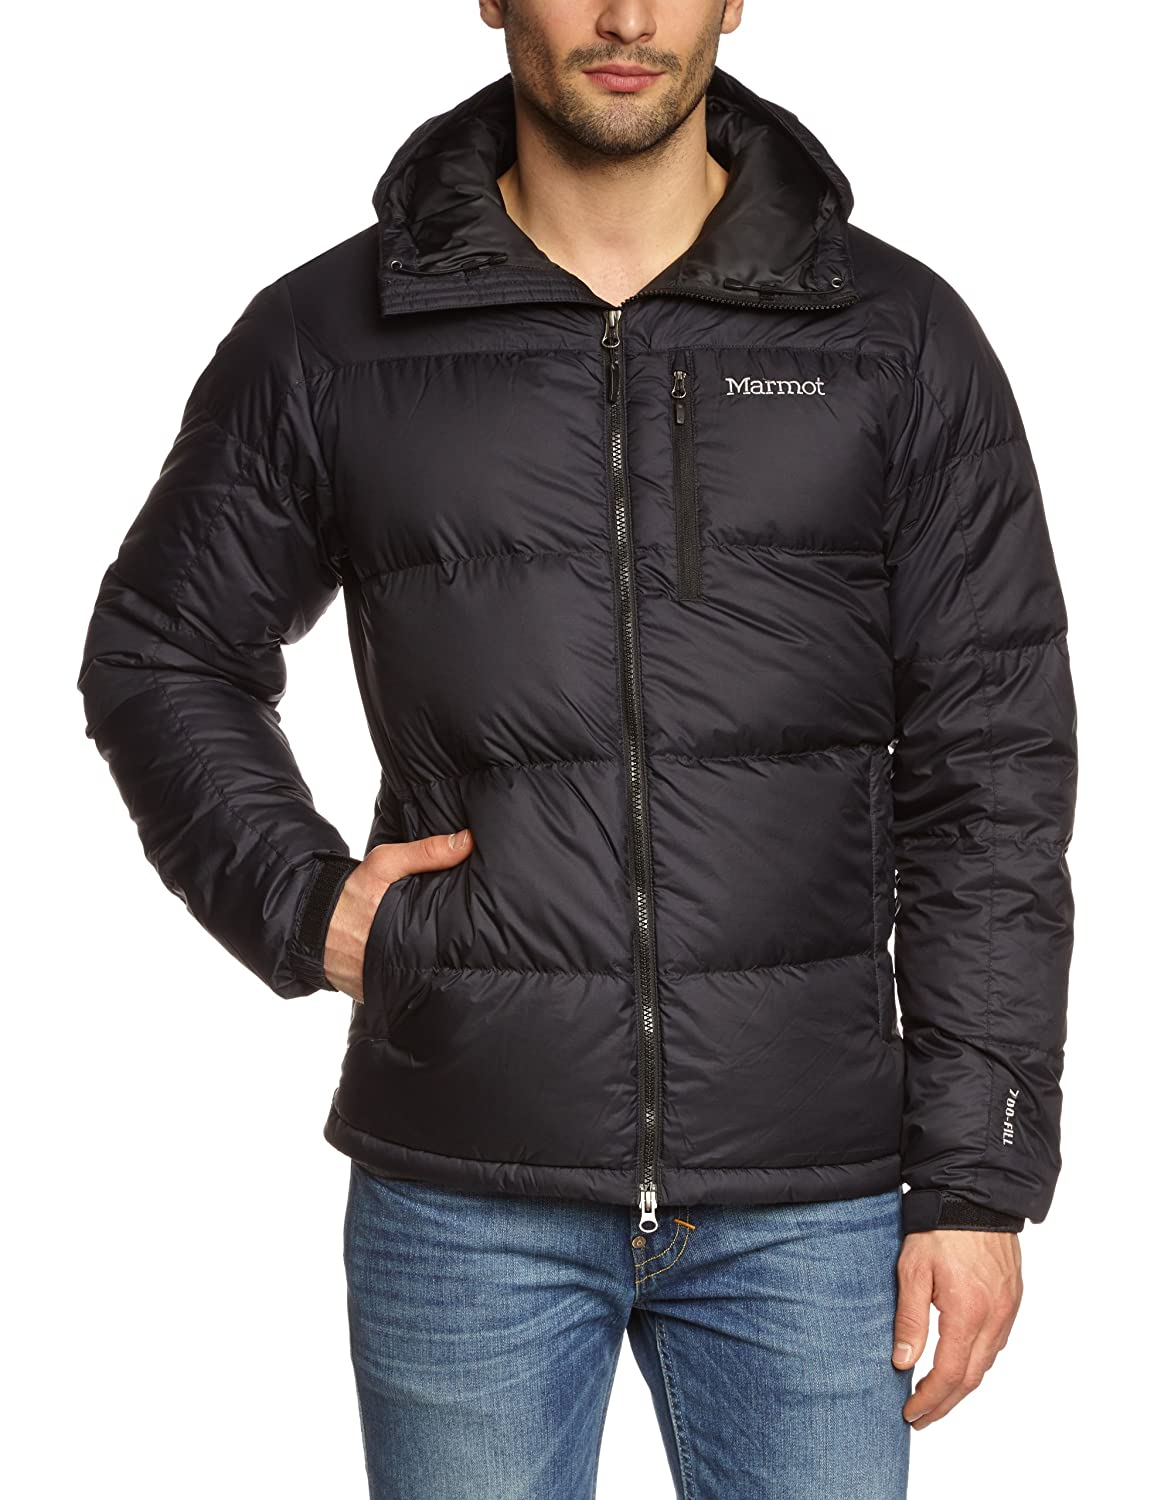 Mens down jacket with hood - Mens Down Jacket With Hood 38